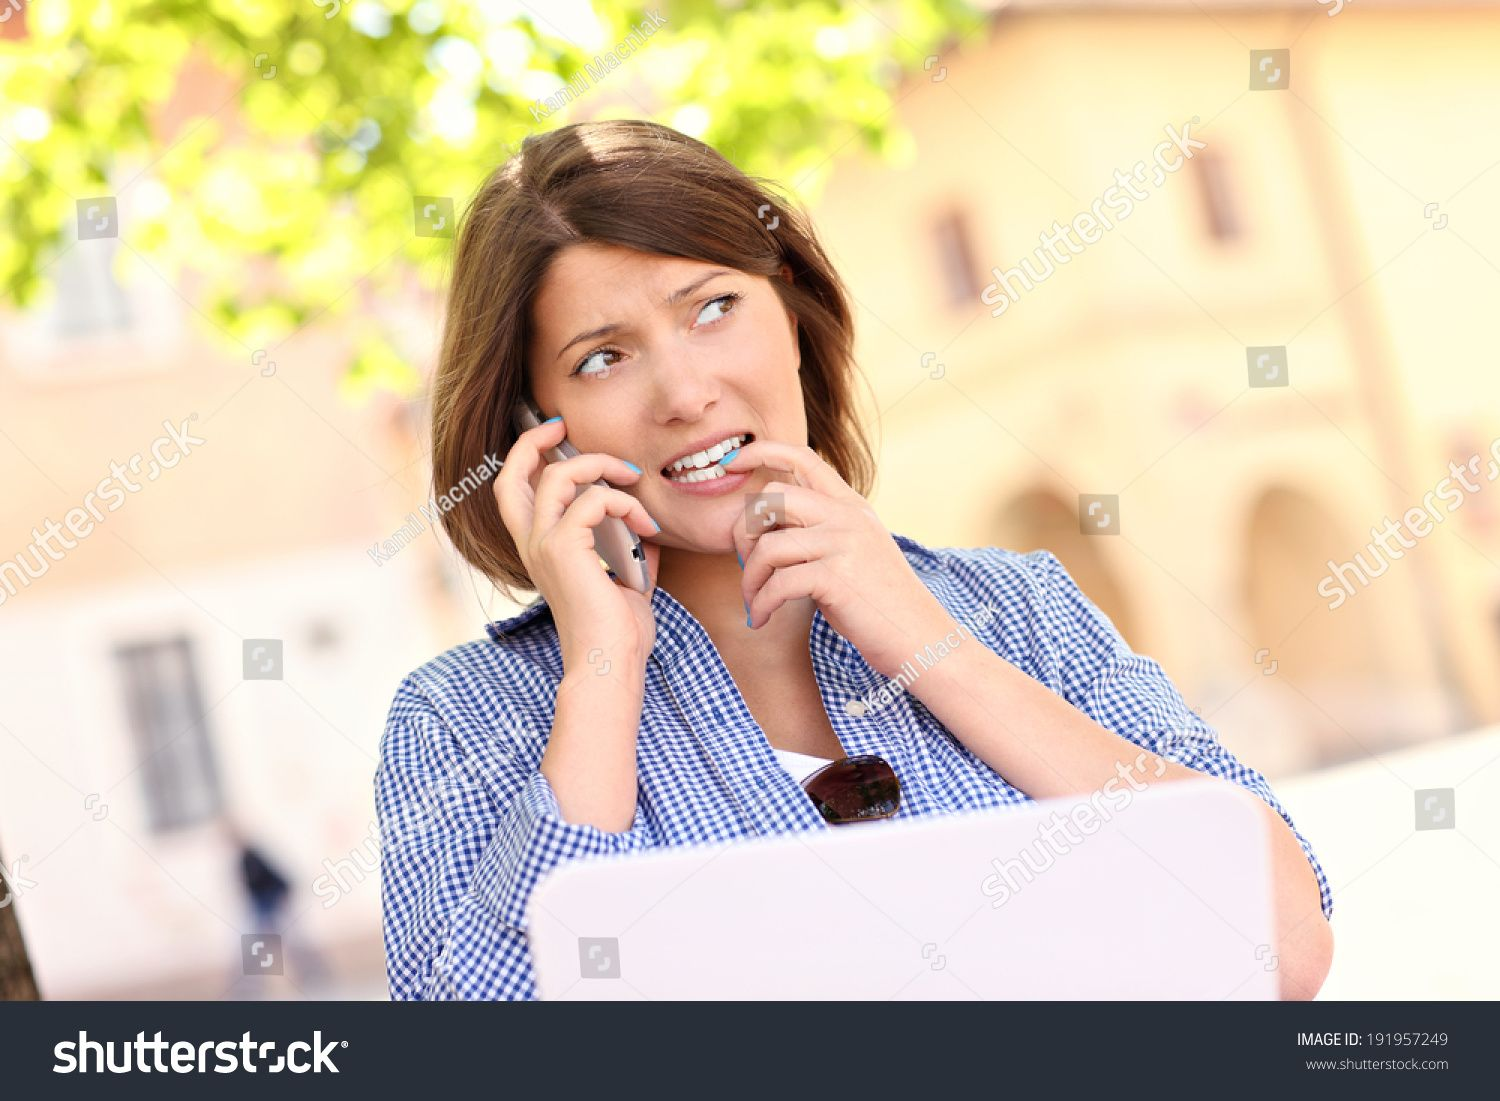 A Picture Of A Worried Woman With Laptop Talking On The Phone In The Park Sponsored Affiliate Woman Worried Pi Stock Photos Photo Editing Photos For Sale